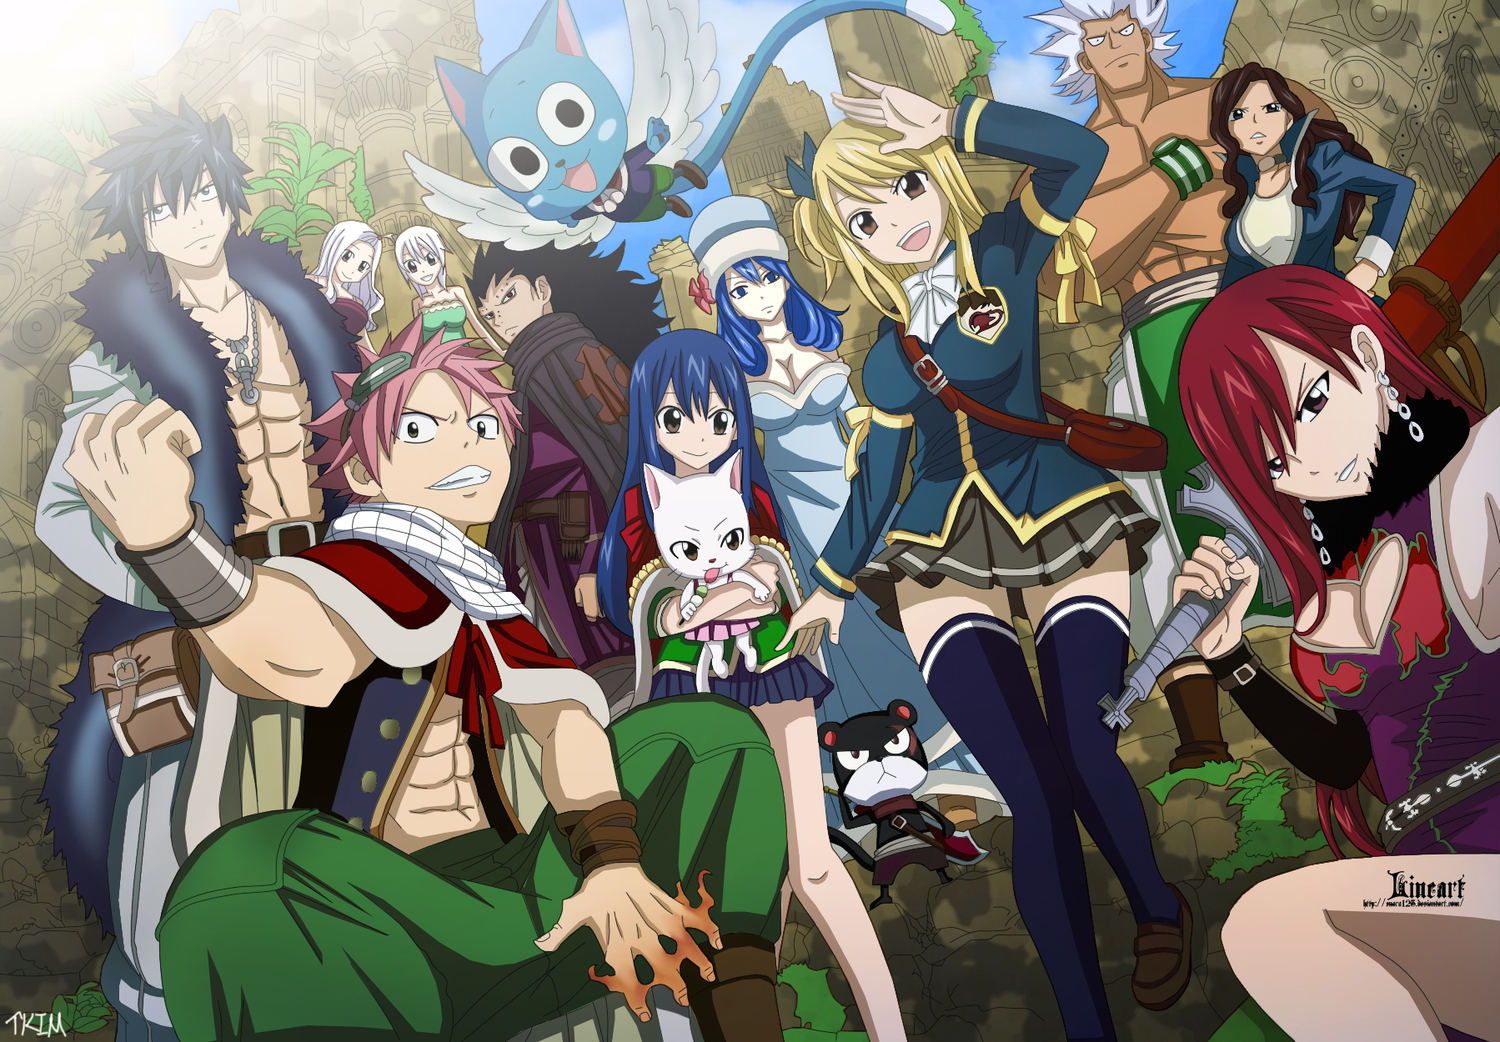 Fairy Tail Guild Wallpaper Hd 923 Fairy Tail HD Wall...